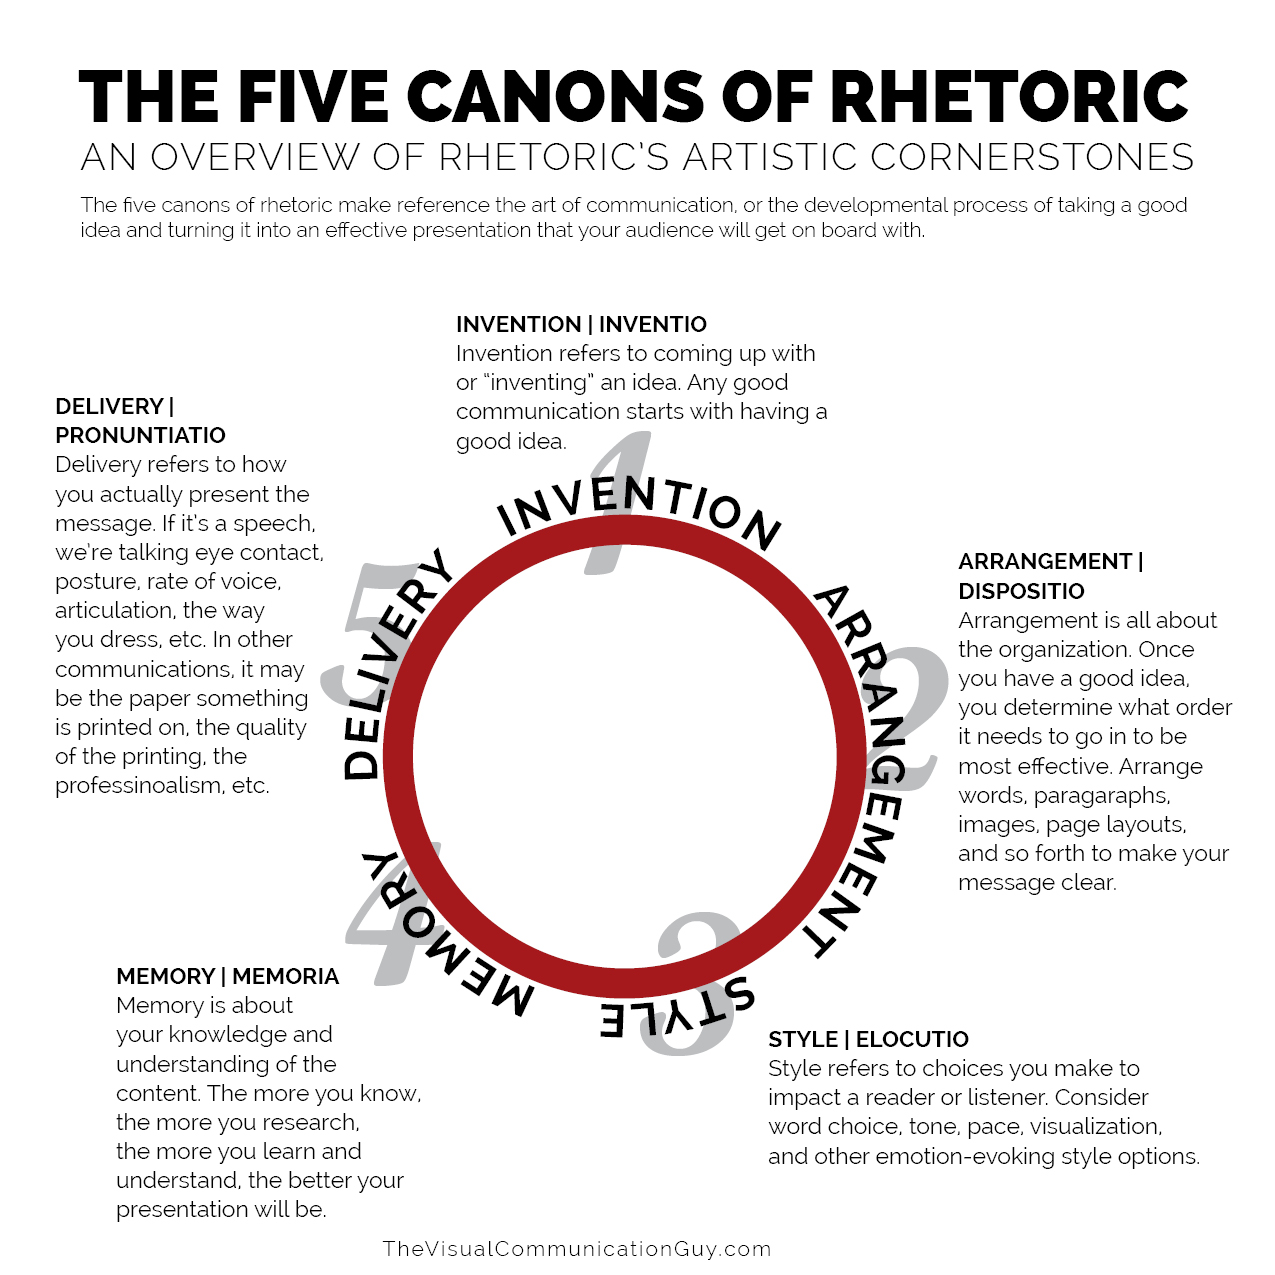 THE FIVE CANONS OF RHETORIC